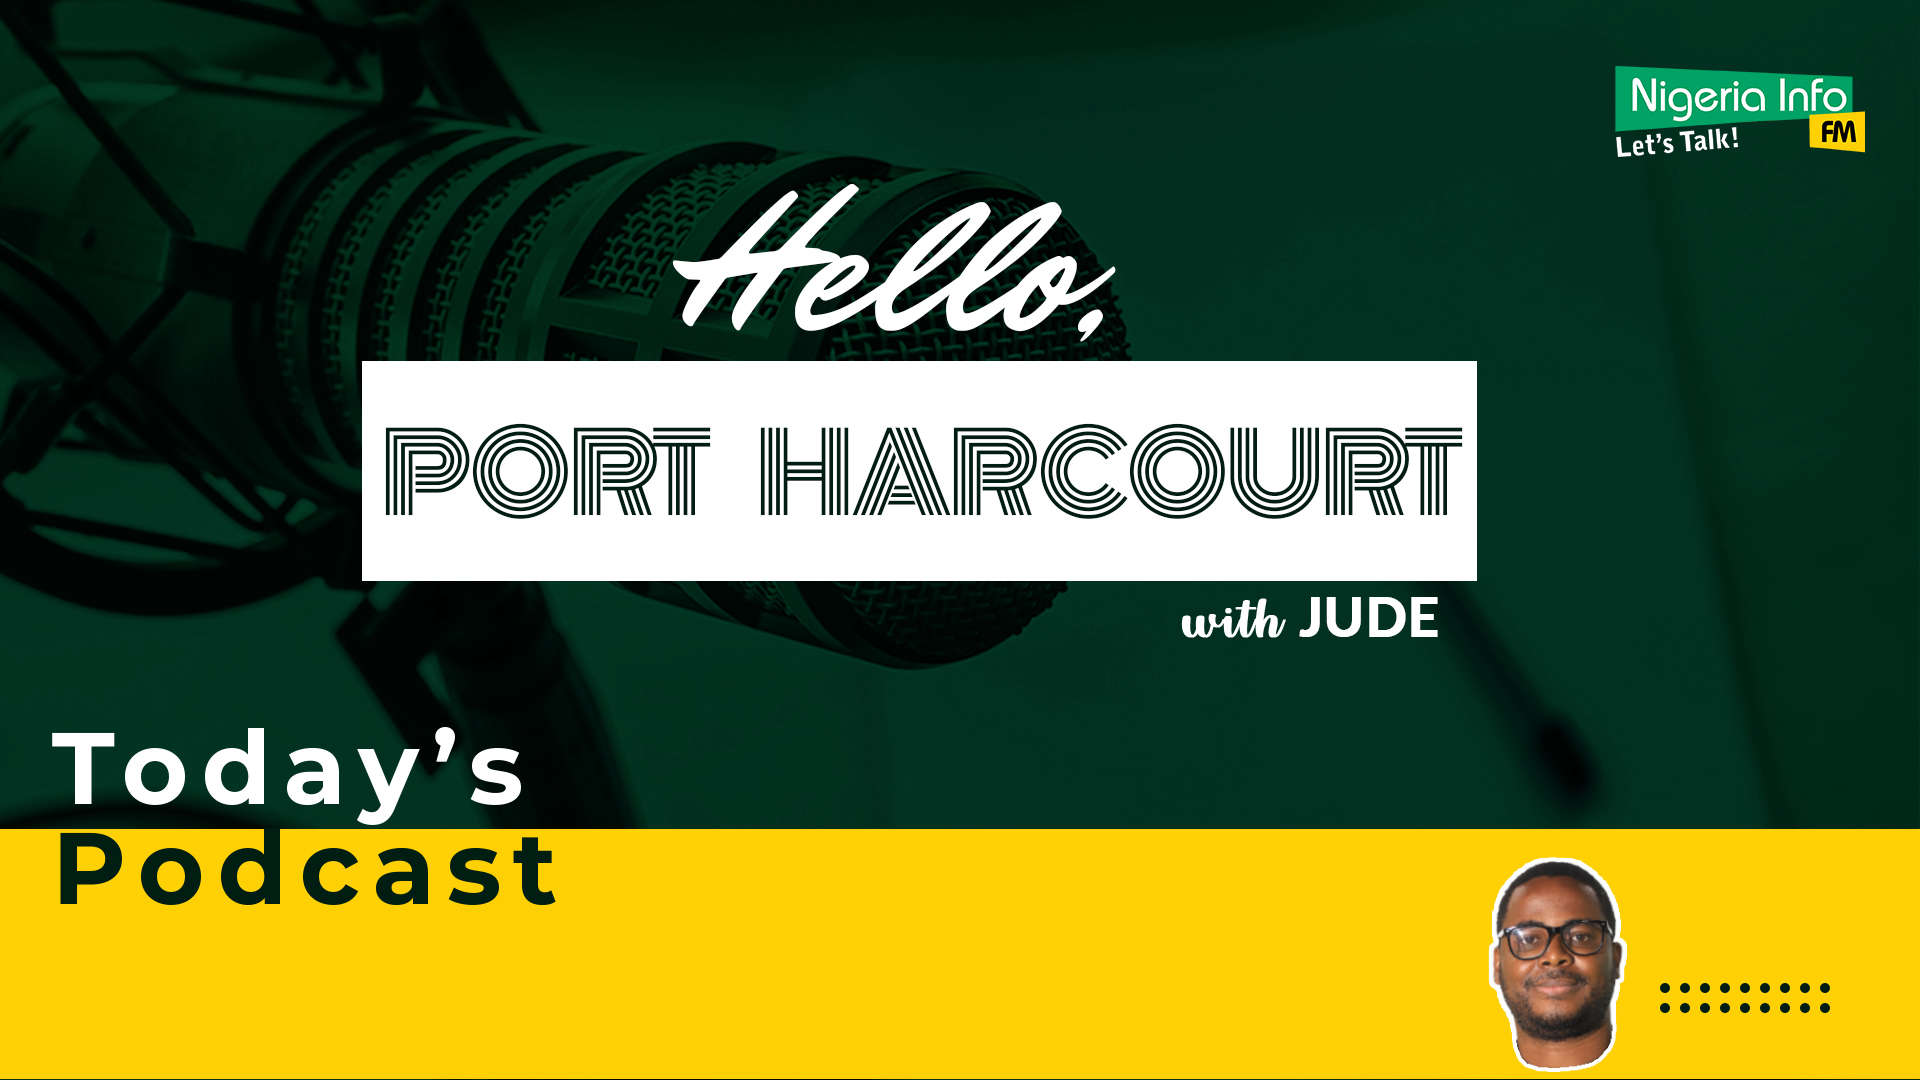 Hello Port Harcourt with Jude